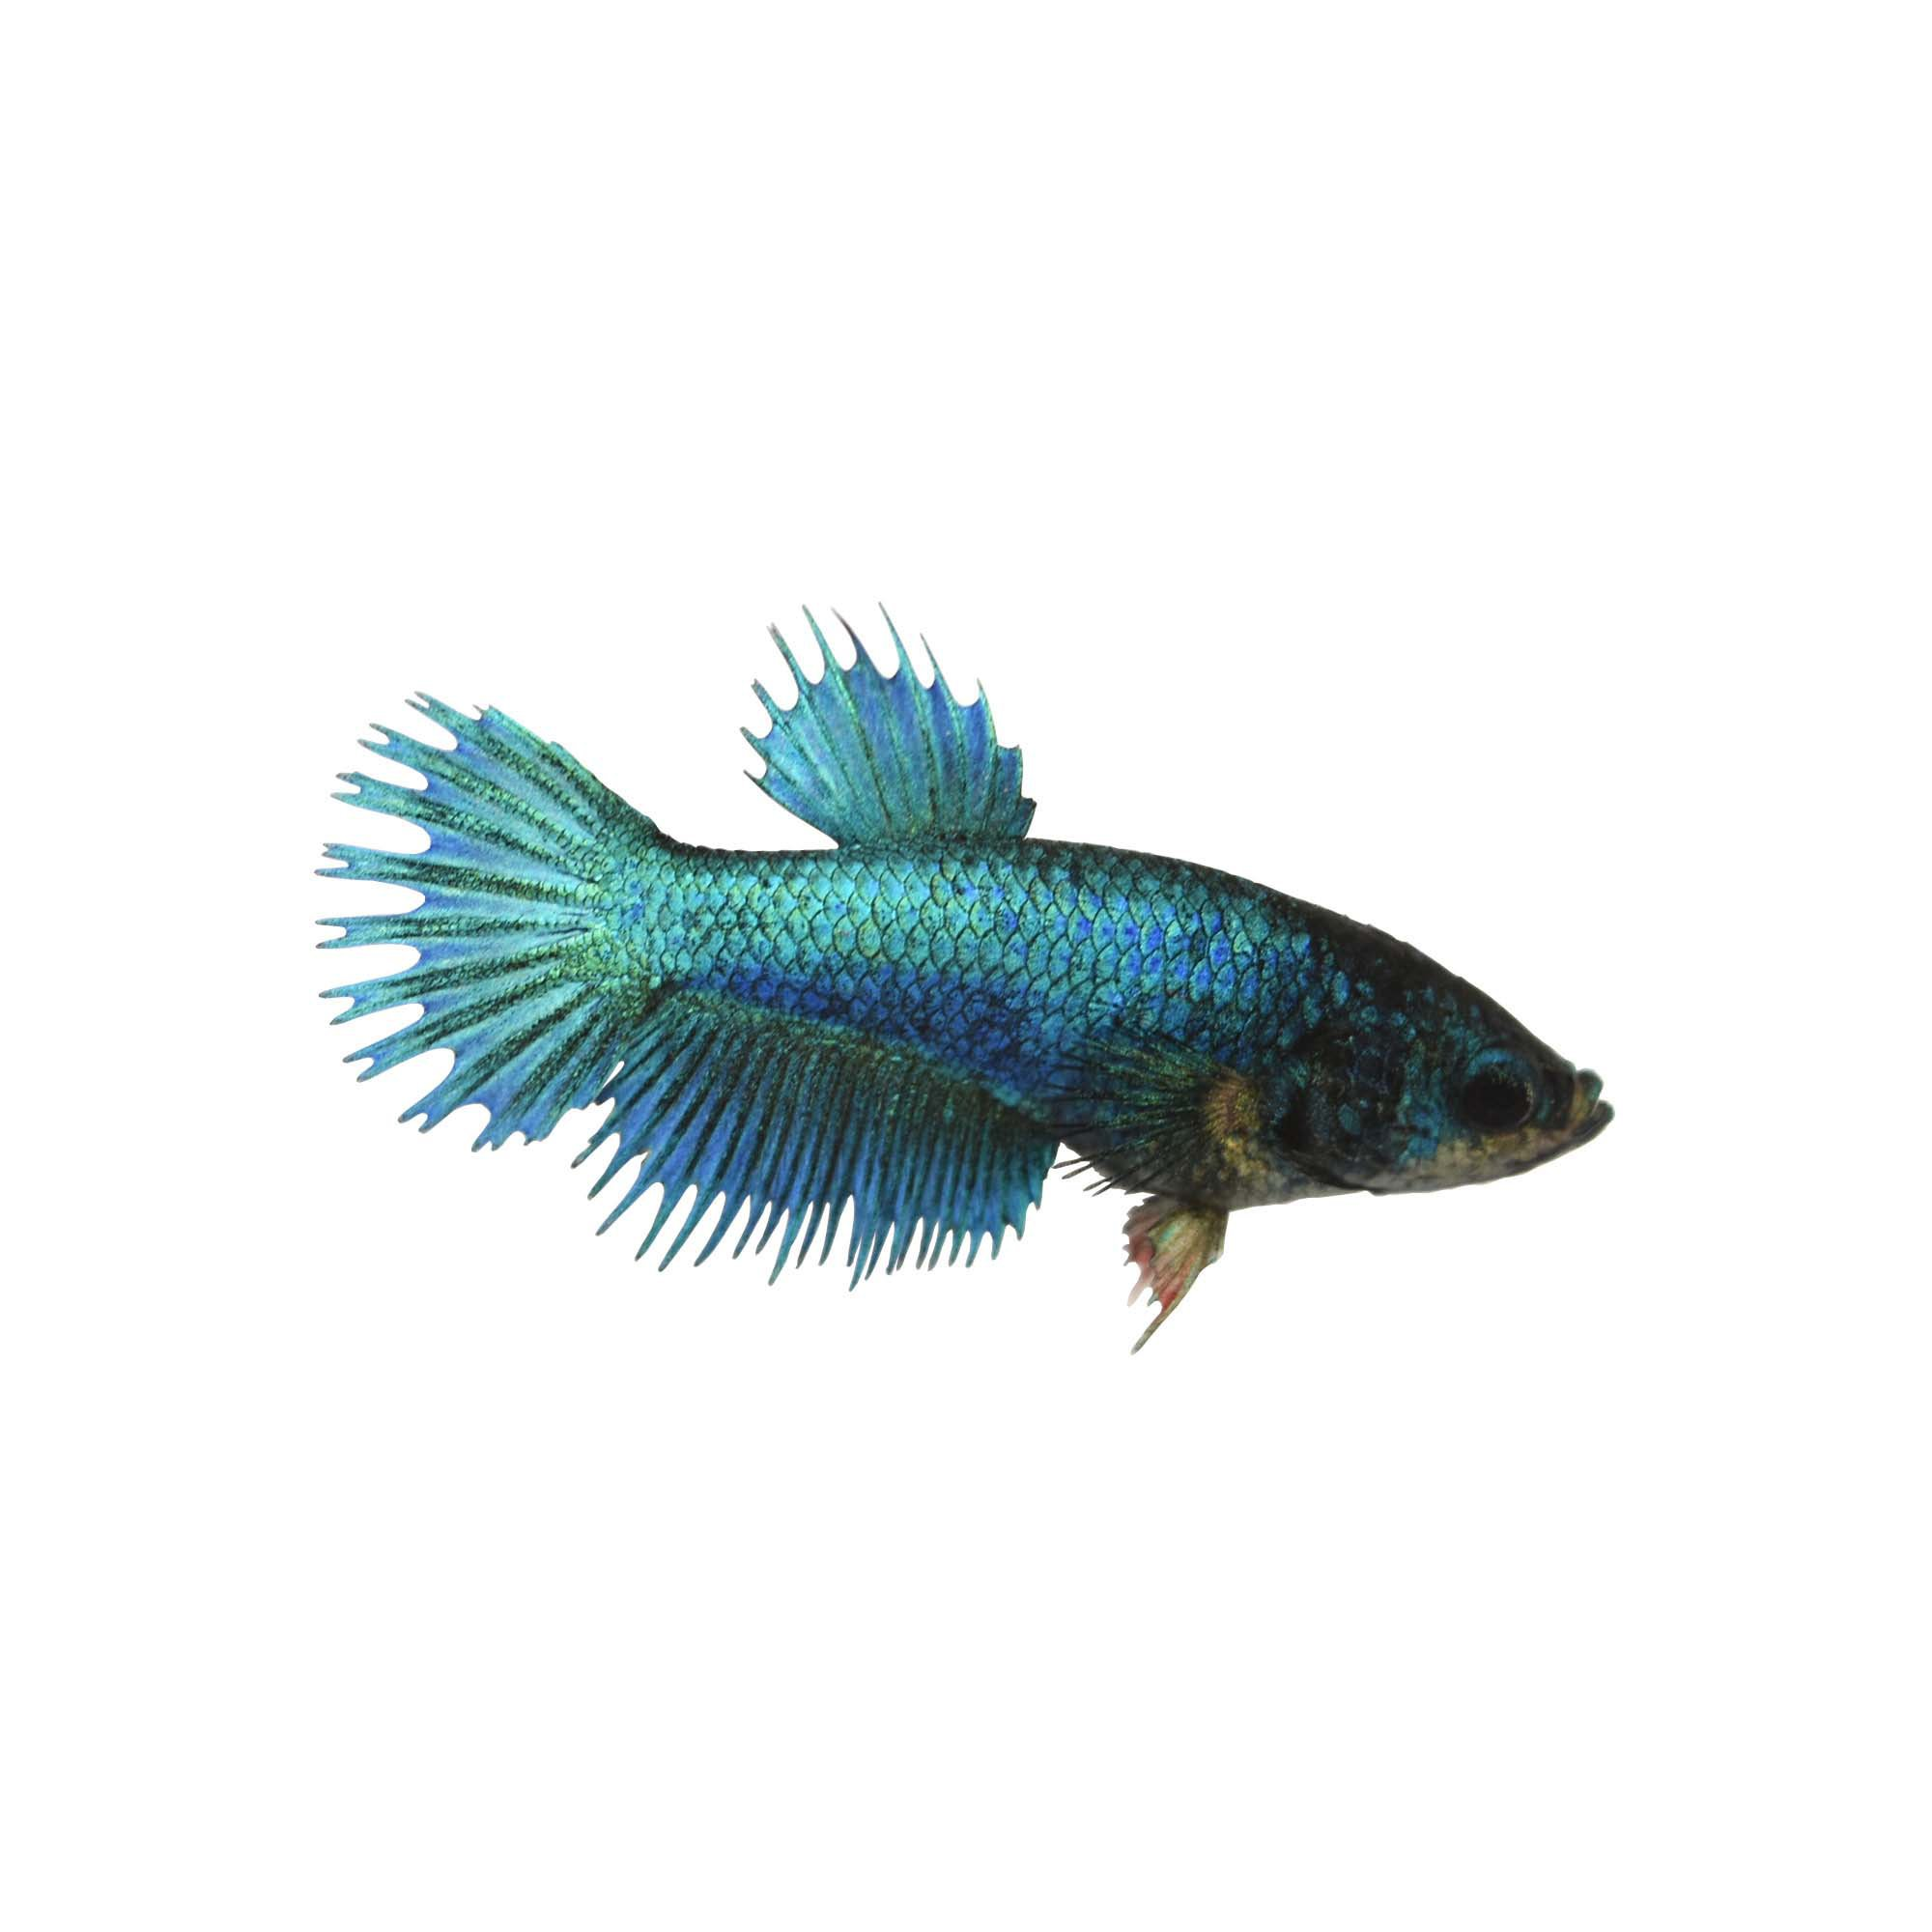 Blue female crowntail betta fish petco for Types of betta fish petco